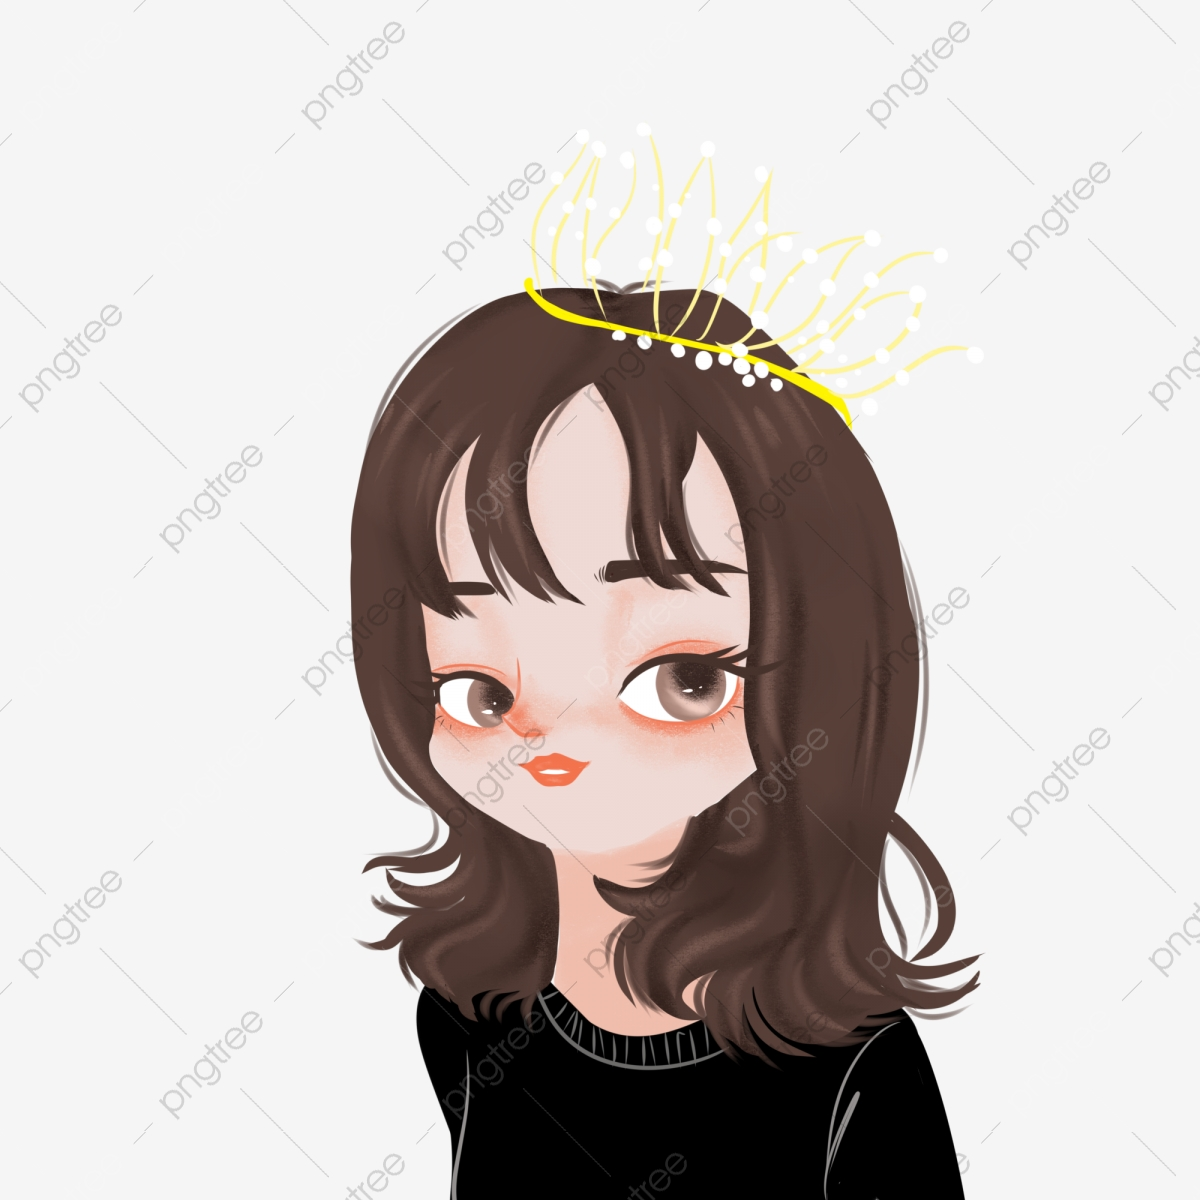 Hand Drawn Cute Cartoon Queen Princess Avatar Girl Wearing Crown Goddess Hand Drawn Cute Cartoon Png Transparent Clipart Image And Psd File For Free Download Queen crown hand drawn illustration. https pngtree com freepng hand drawn cute cartoon queen princess avatar girl wearing crown goddess 4386992 html